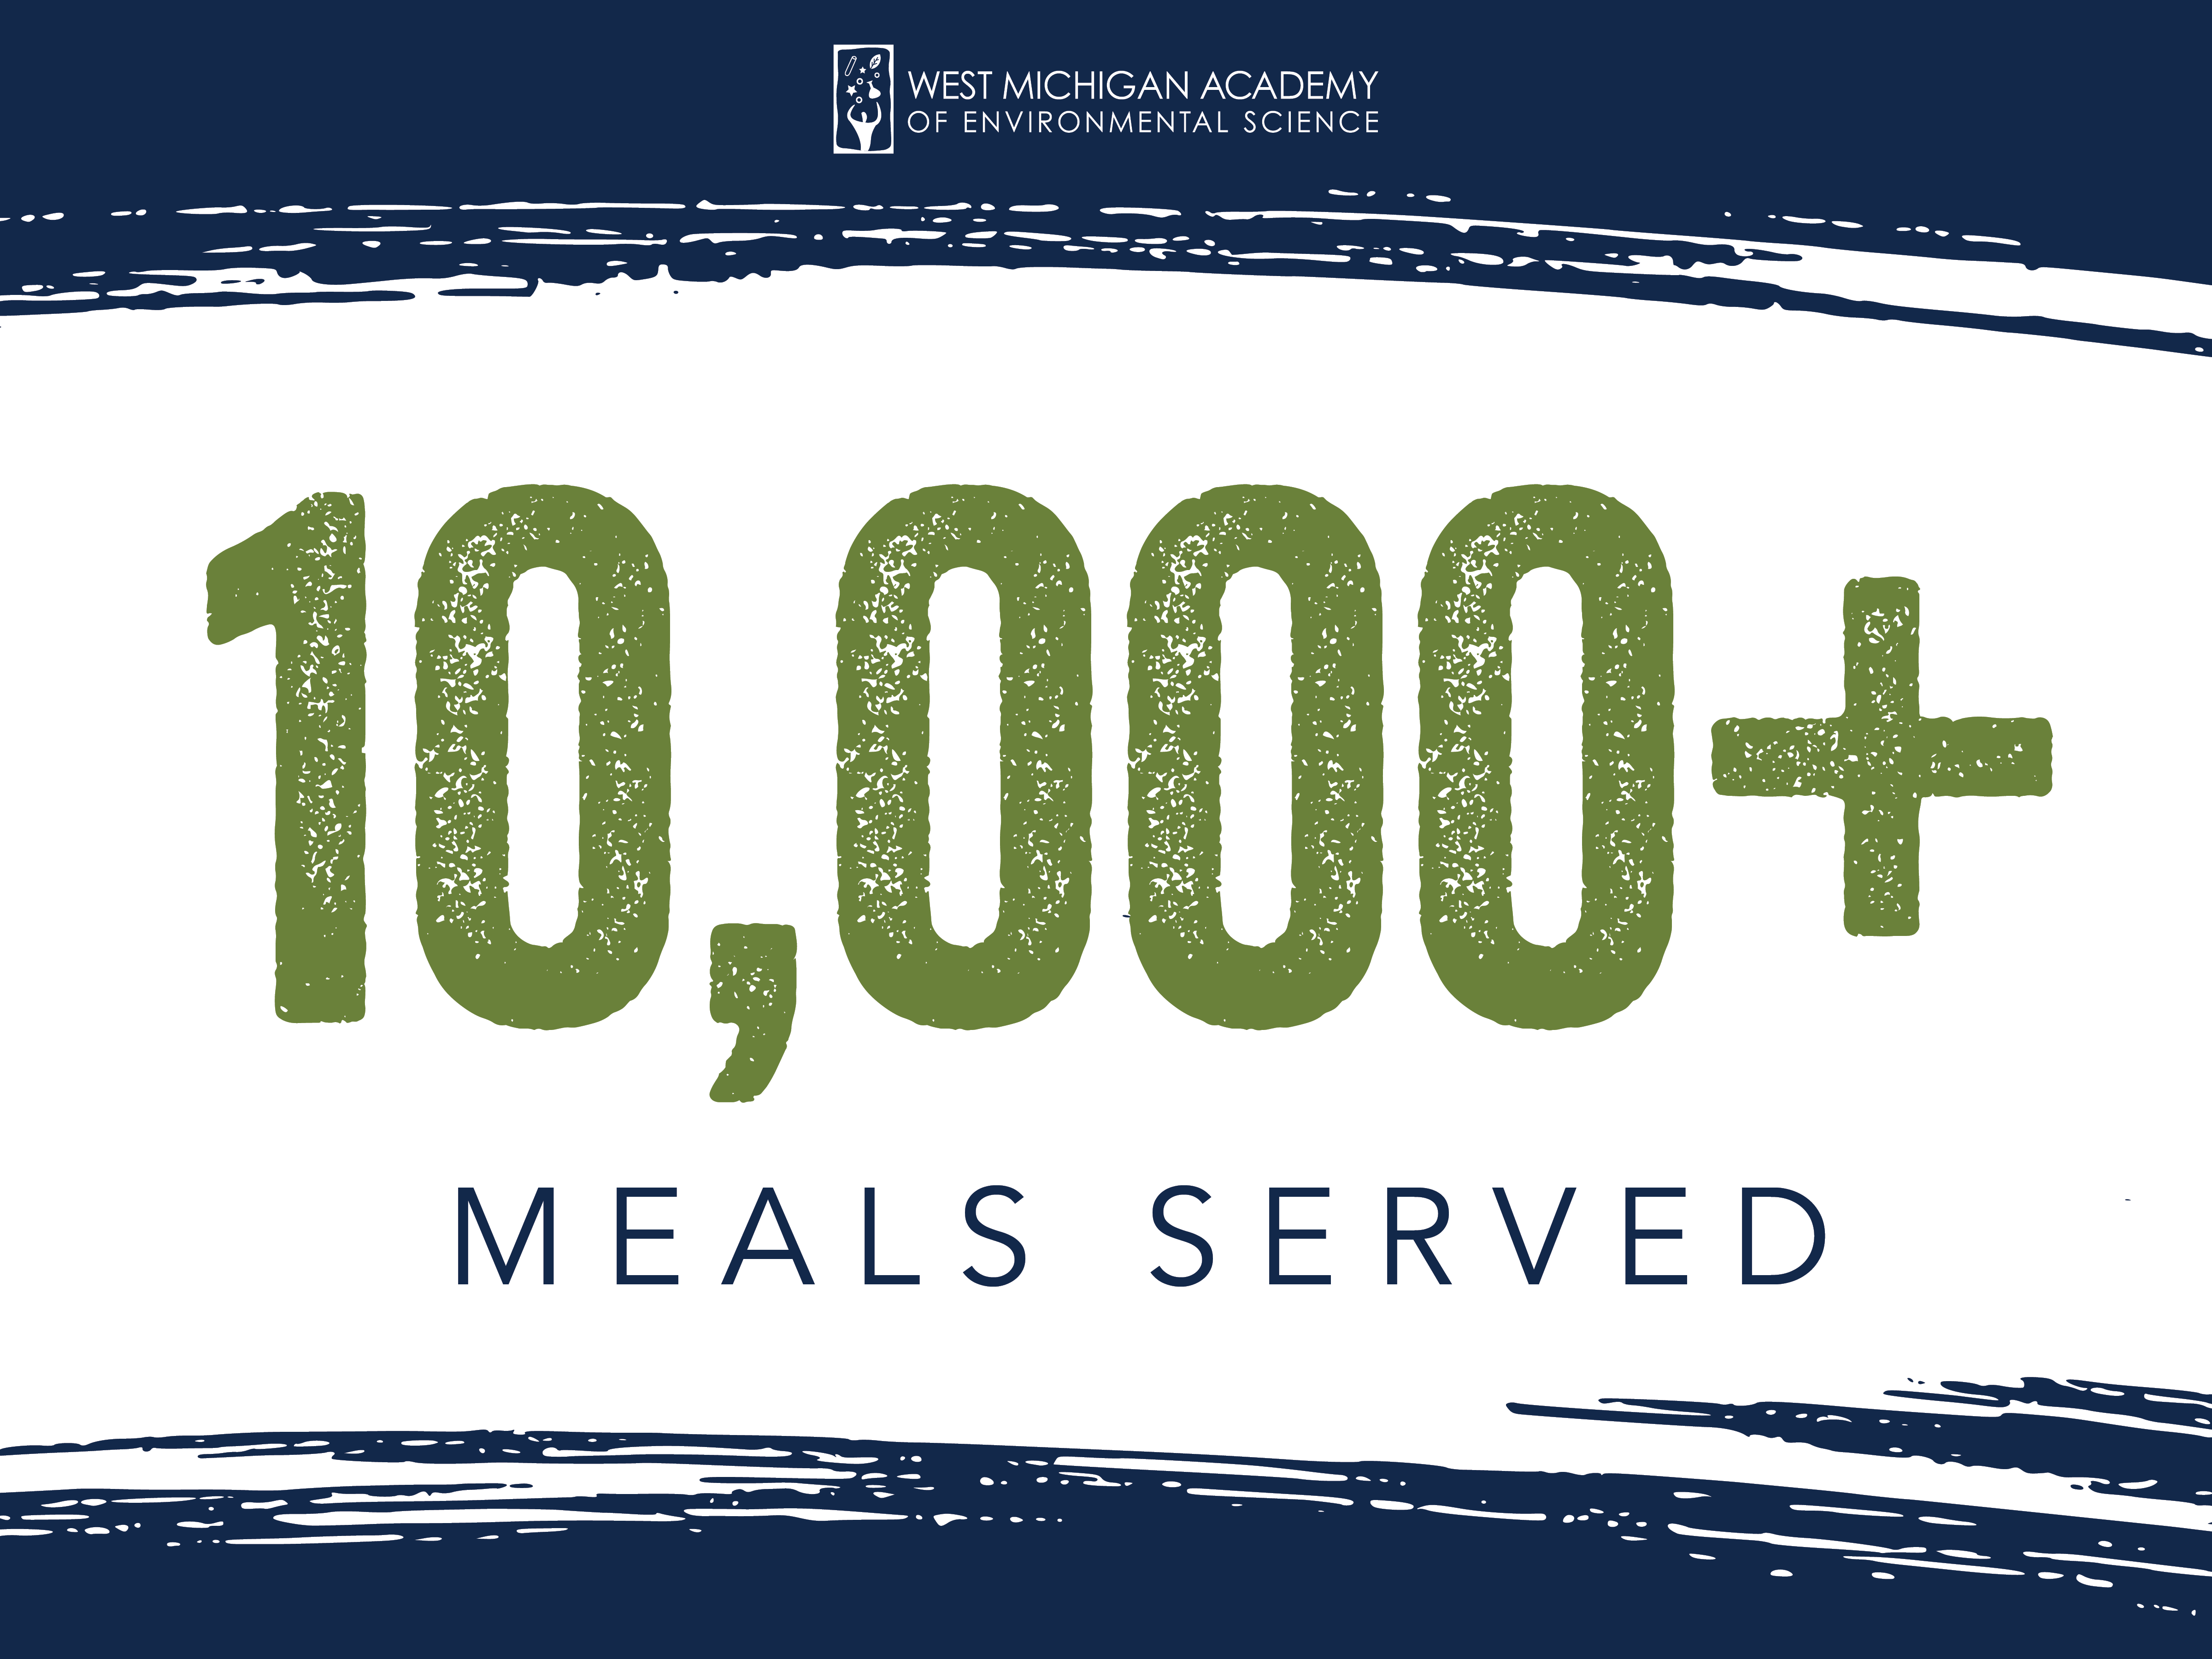 More than 10,000 meals served!